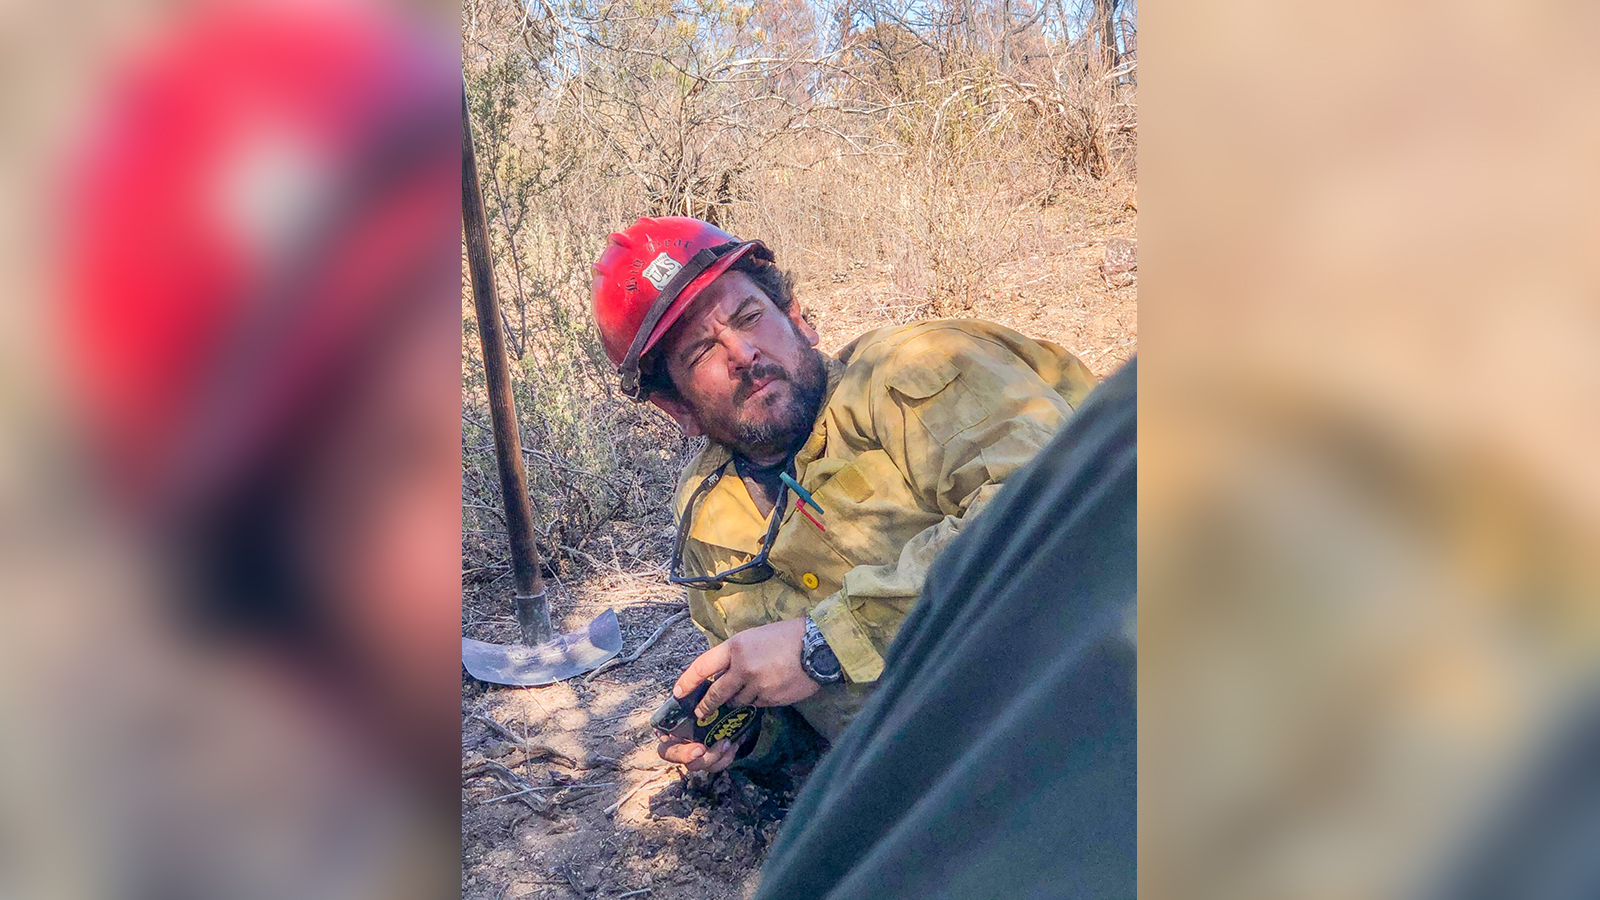 Authorities identify firefighter who died battling a blaze sparked by gender reveal party